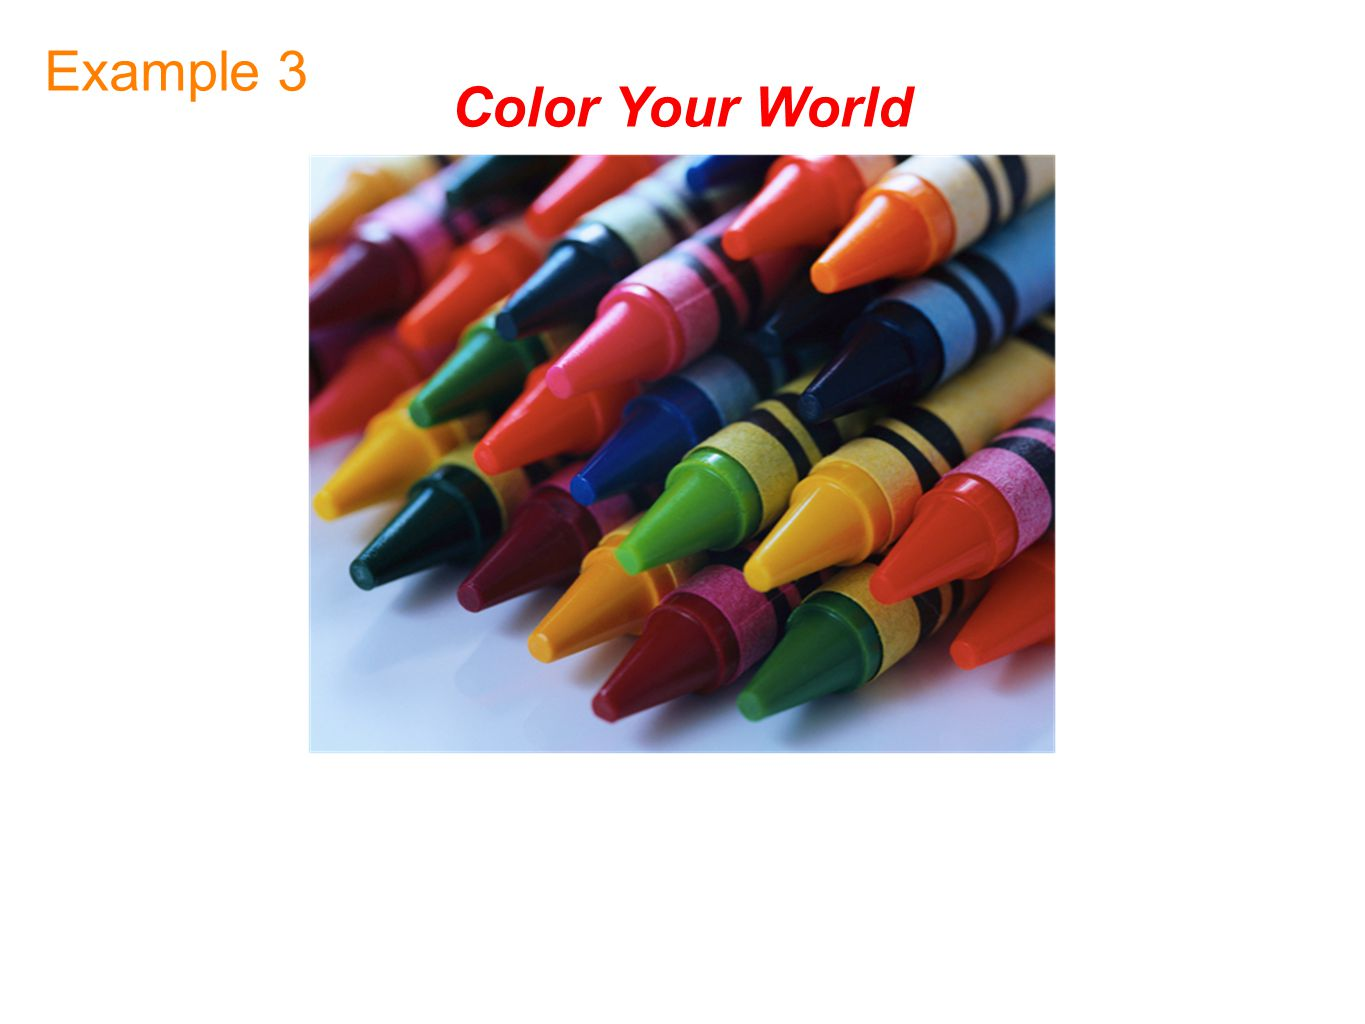 Color Your World Example 3